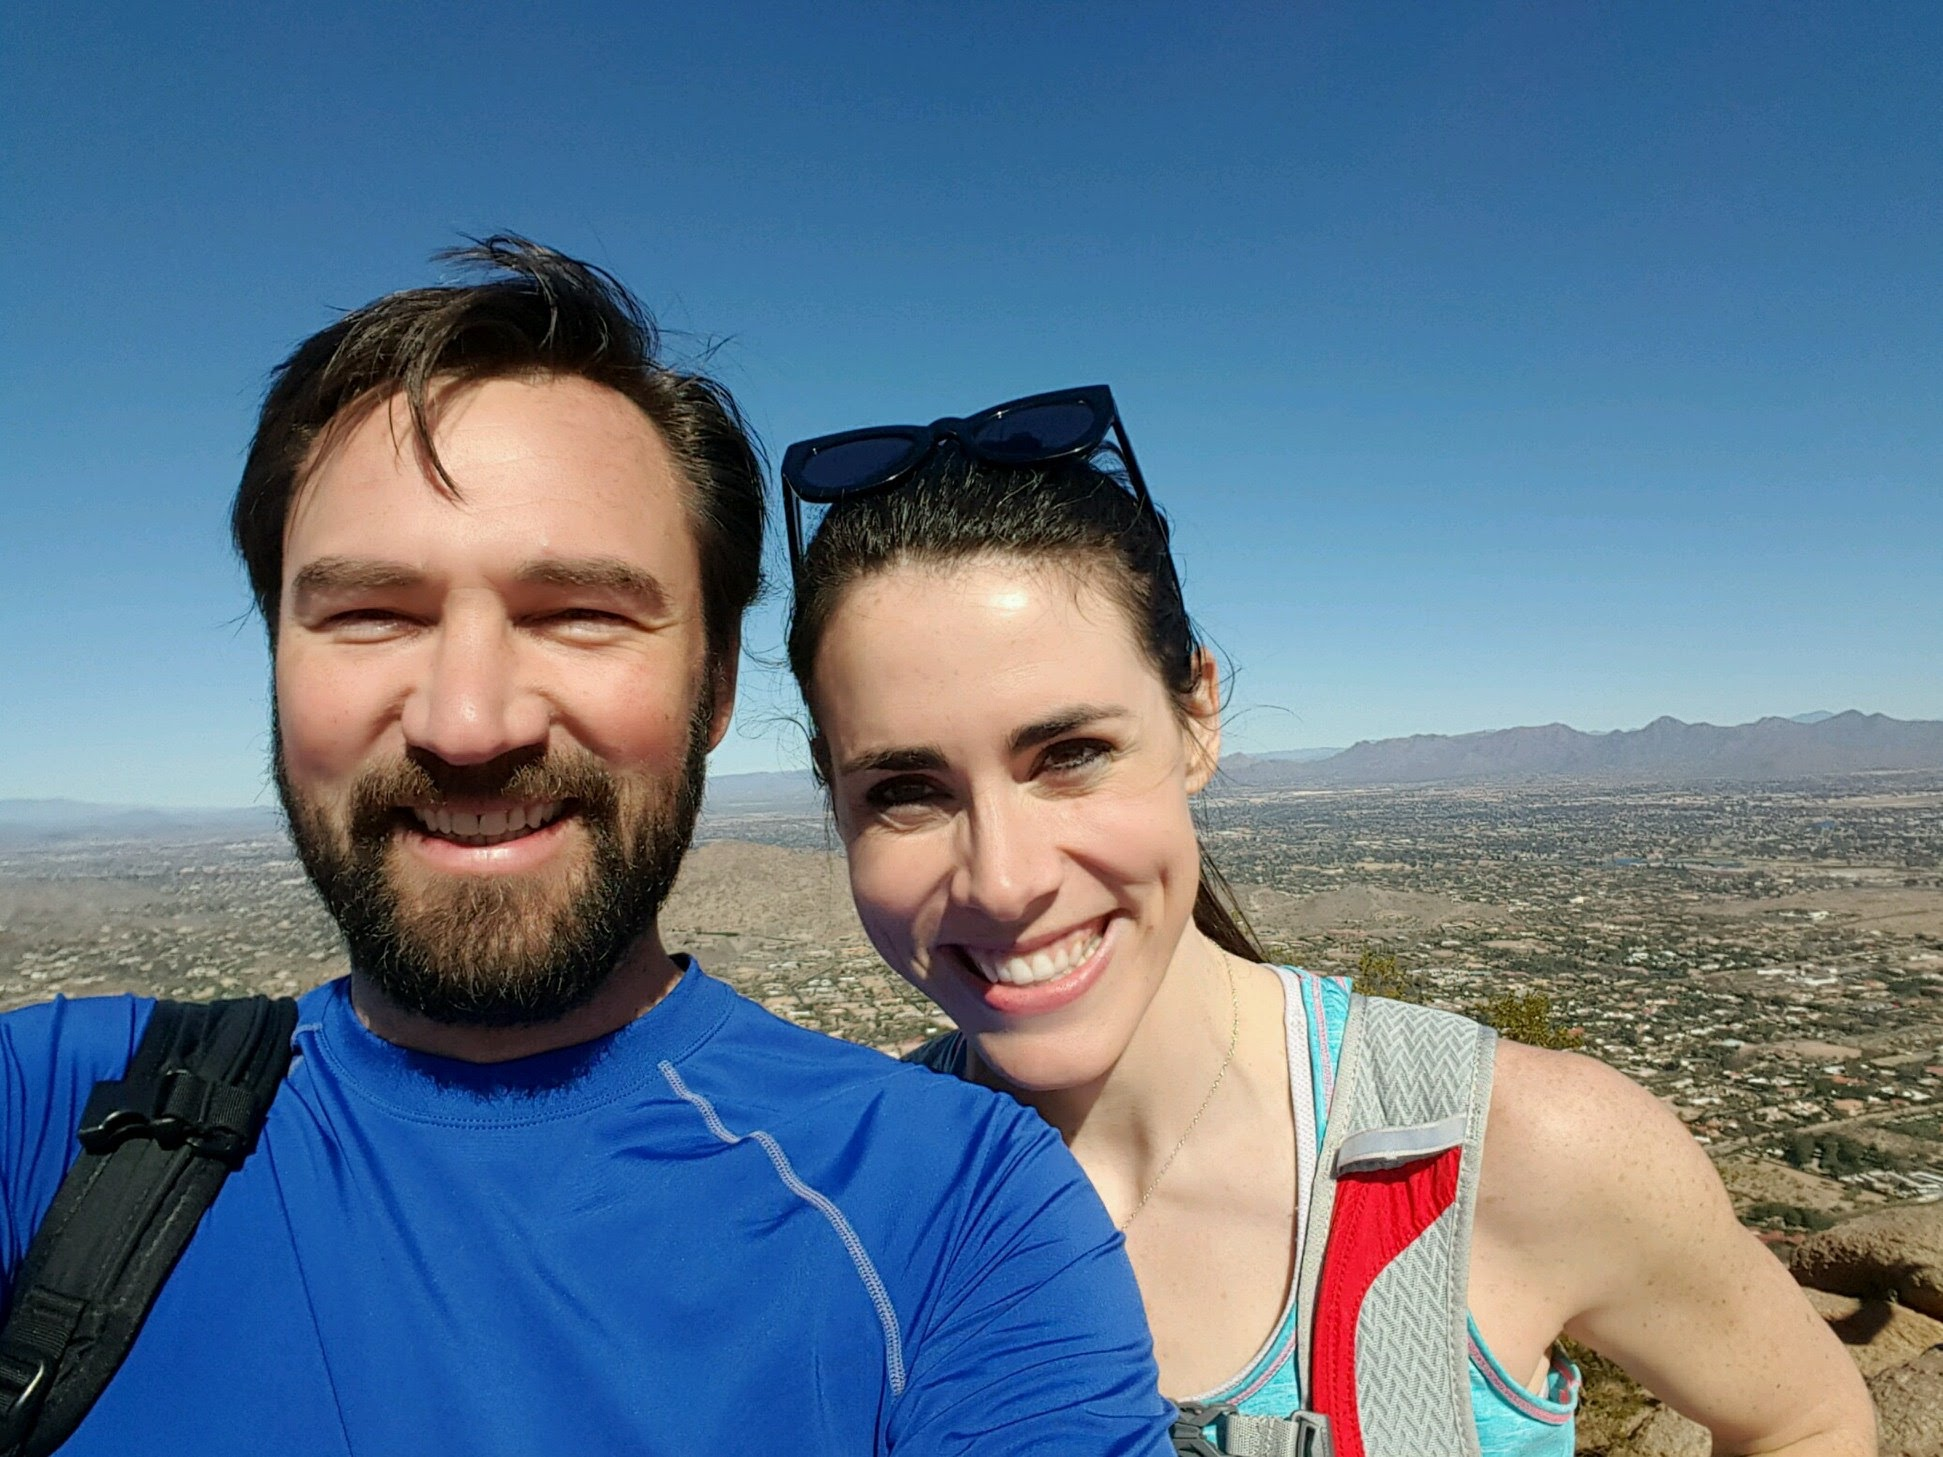 Our first date: hiking Camelback Mountain in Phoenix. 2/6/16.